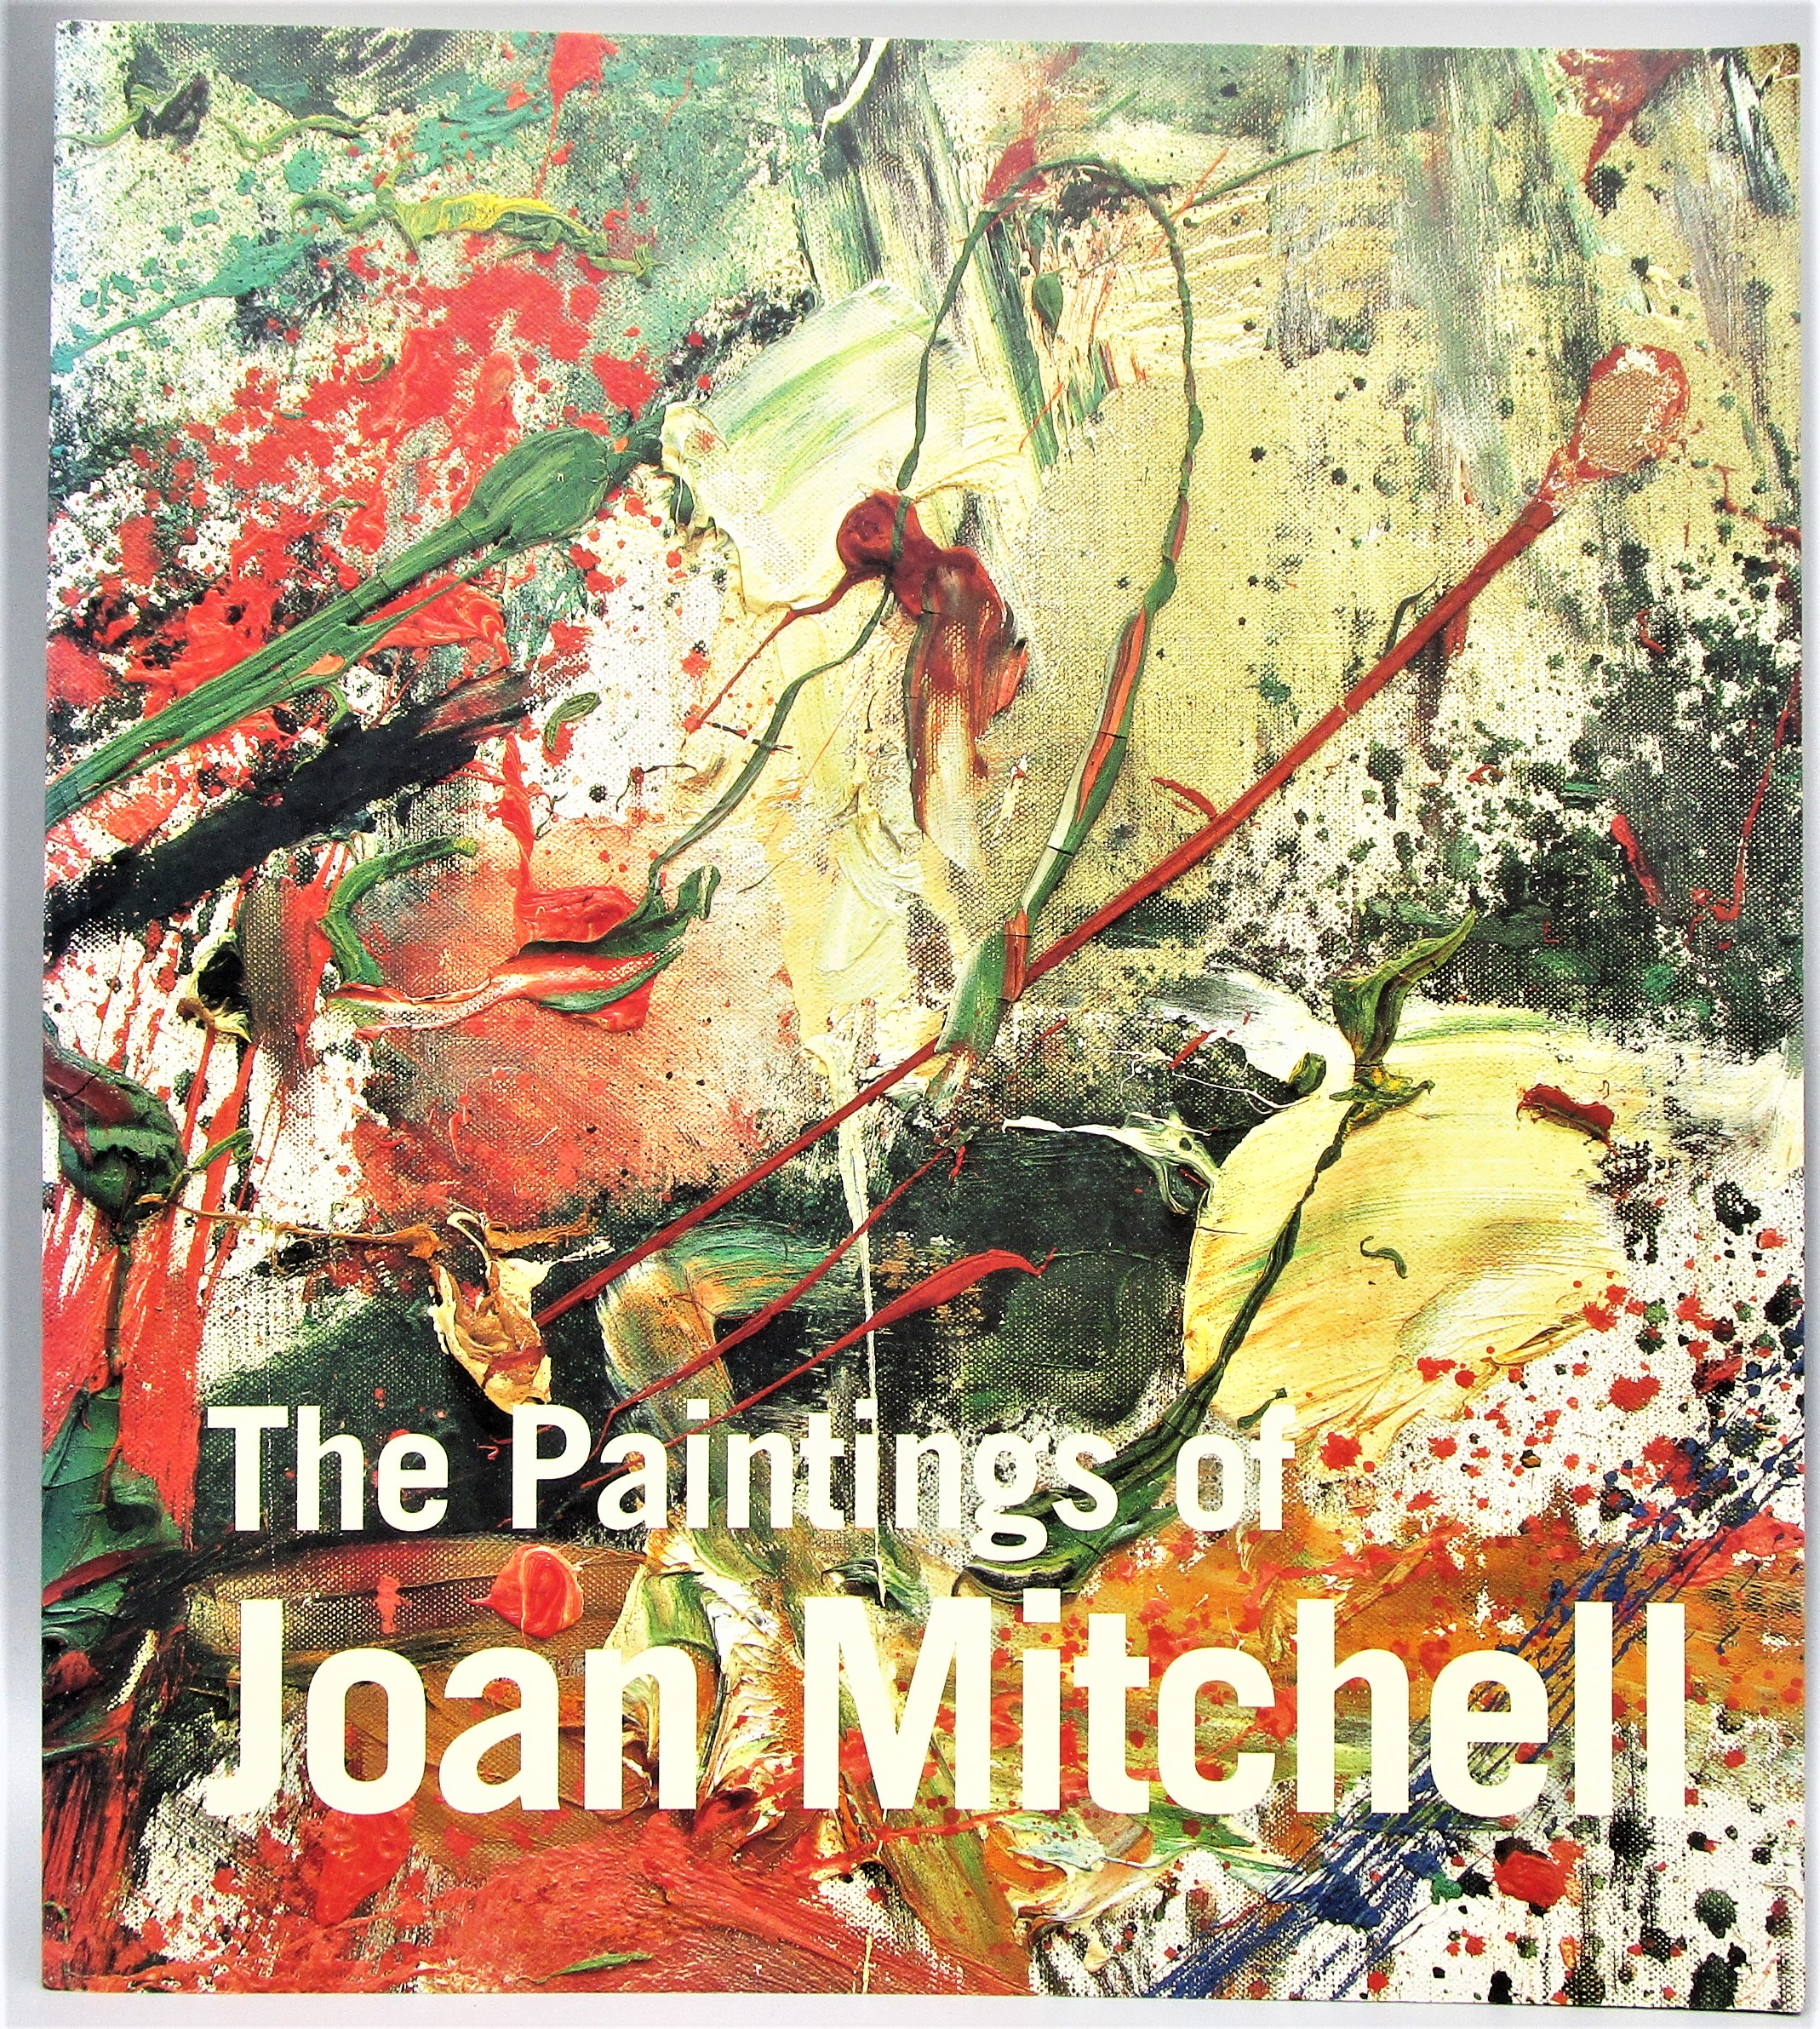 THE PAINTINGS OF JOAN MITCHELL, by Jane Livingston - 2002